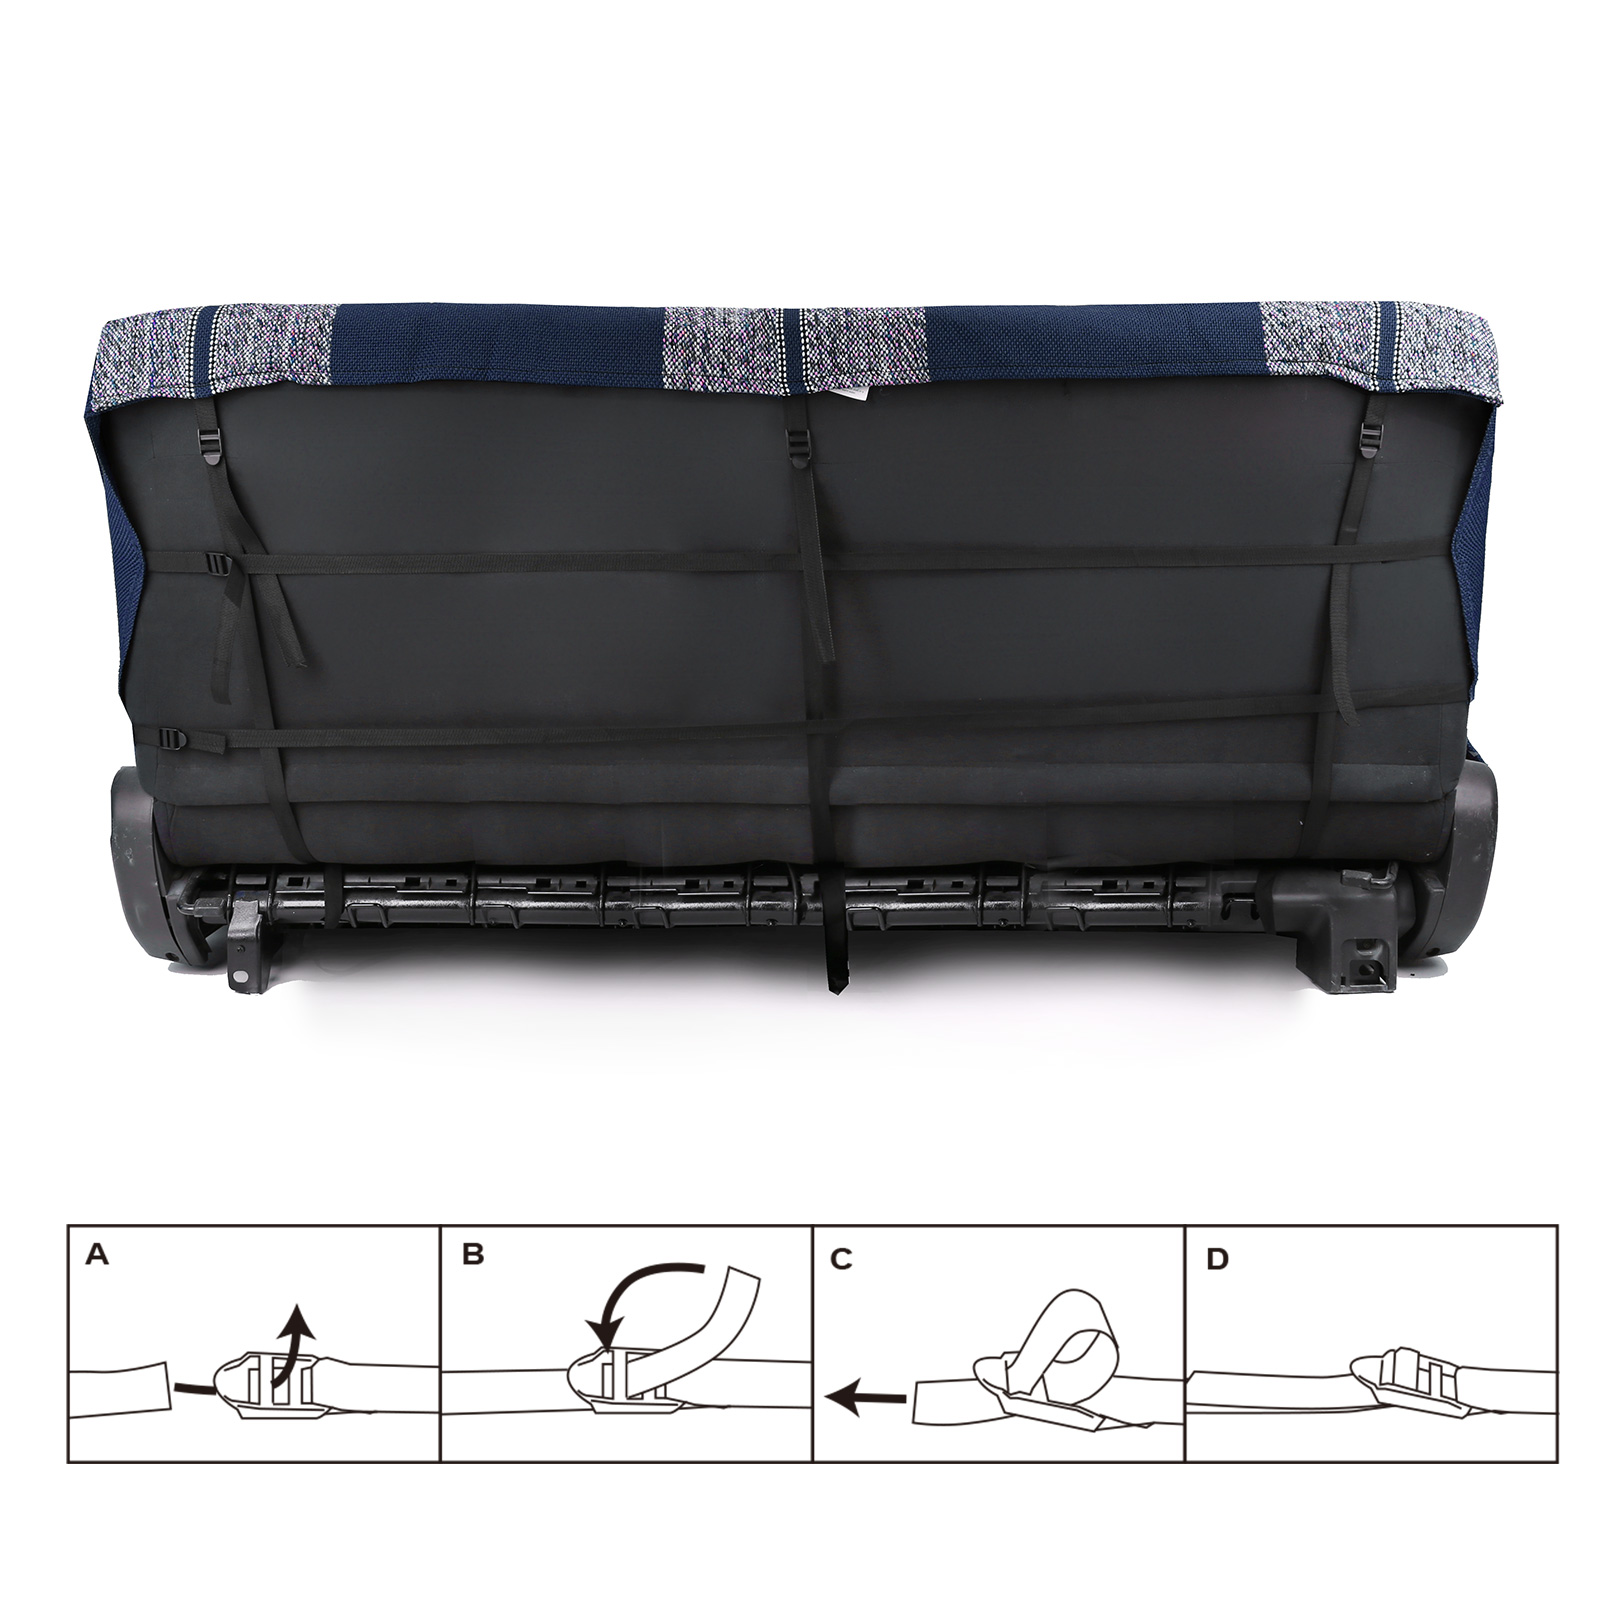 Leader Accessories Saddle Blanket Blue Full Size Pickup Trucks Bench Seat Cover Universal Work with Bench Seats